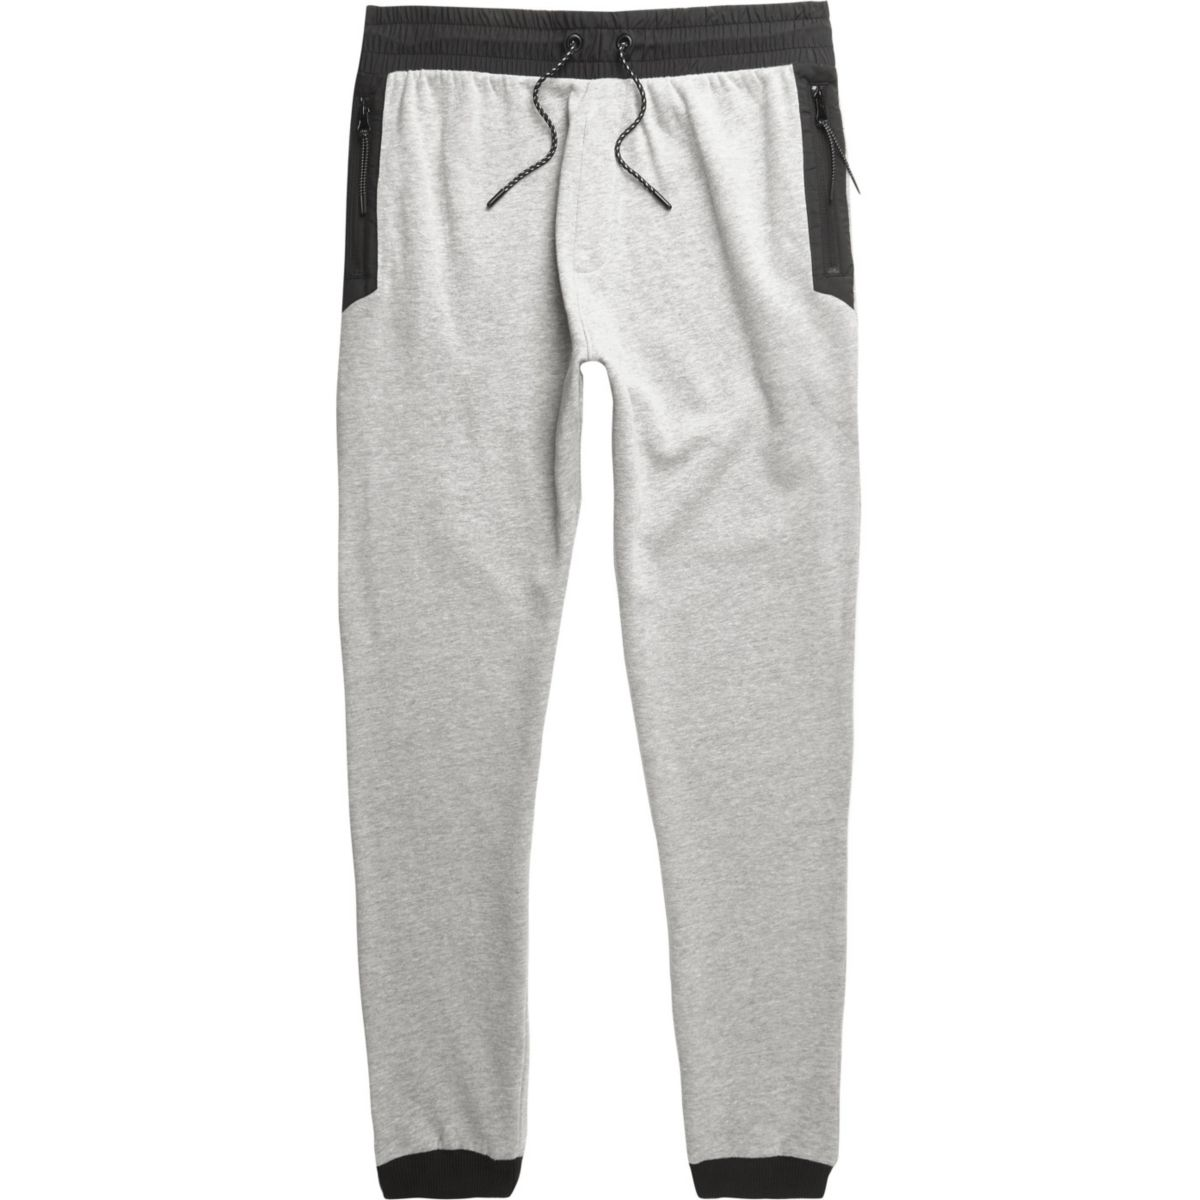 Marl grey contrast trims joggers